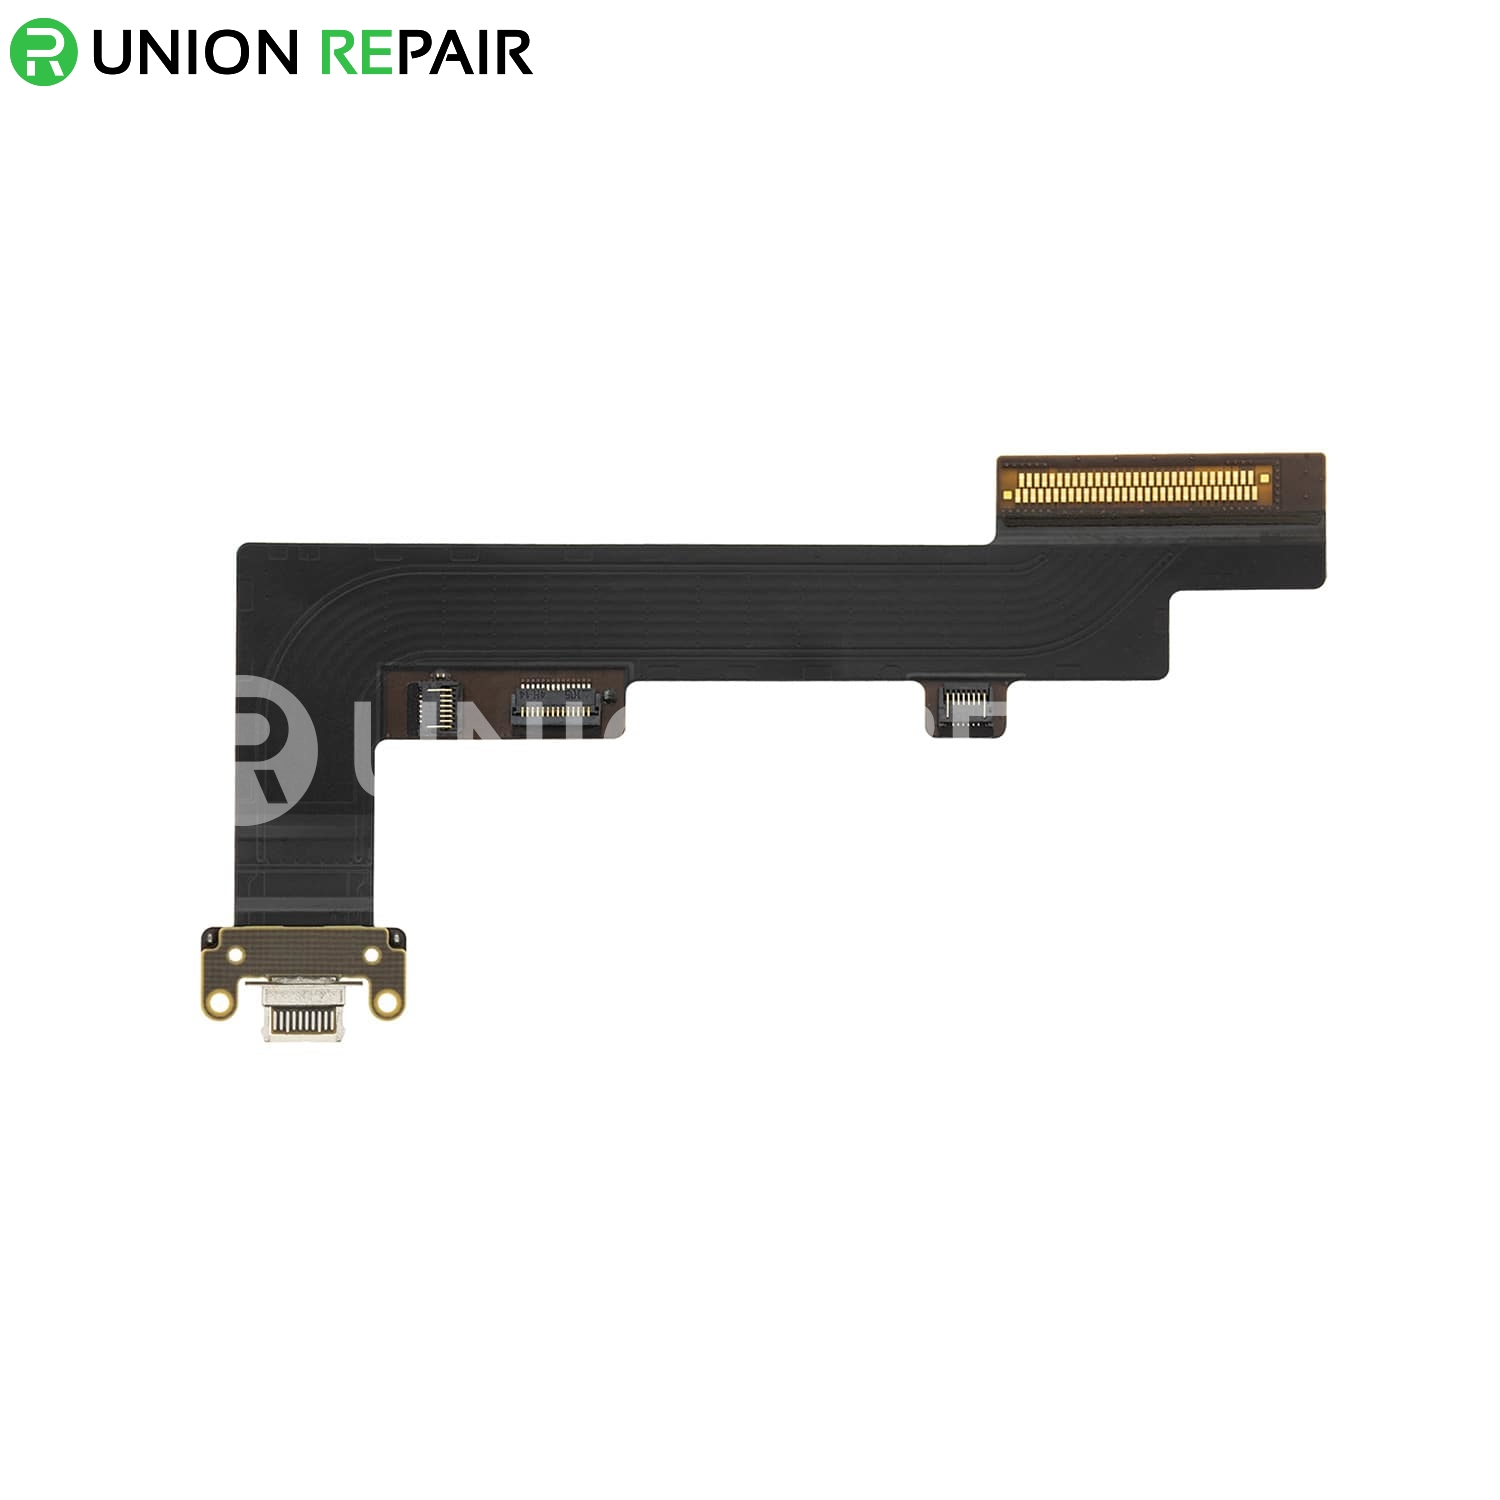 Replacement for iPad Air 4 Charging Connector Flex Cable - Black